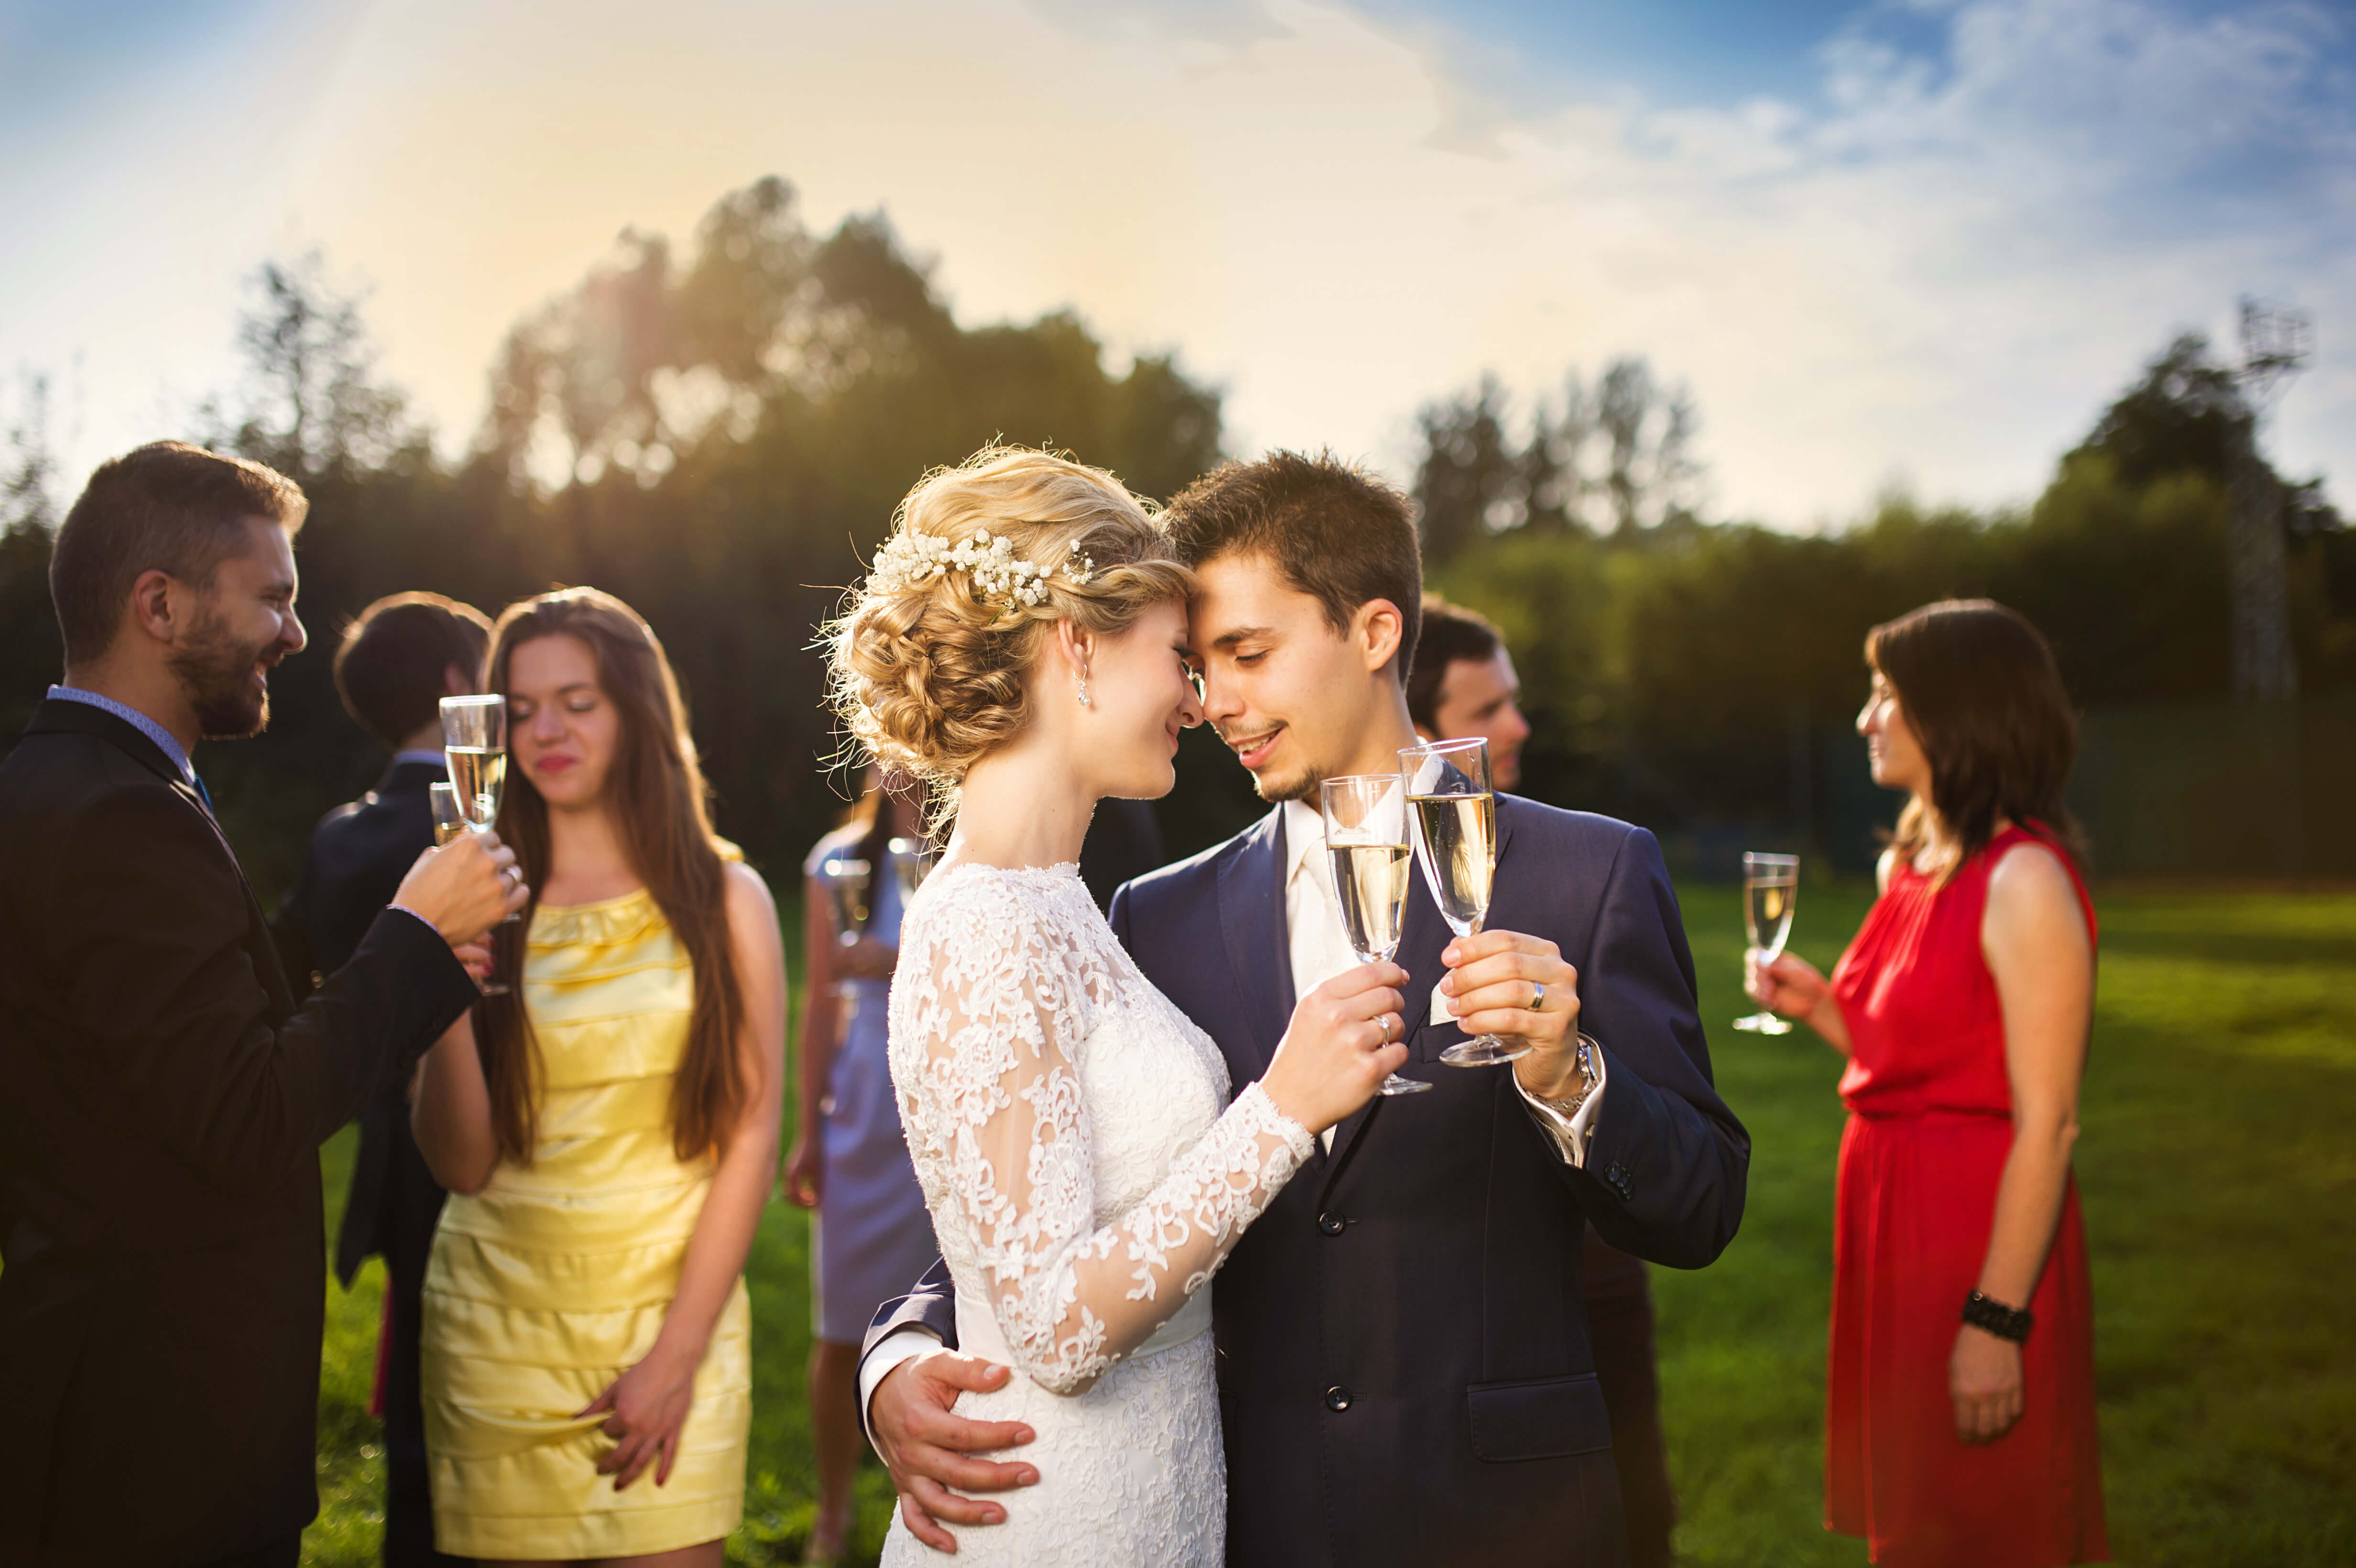 All-inclusive wedding packages at Painted Mountain golf resort Mesa AZ | Westgate Painted Mountain Golf Resort